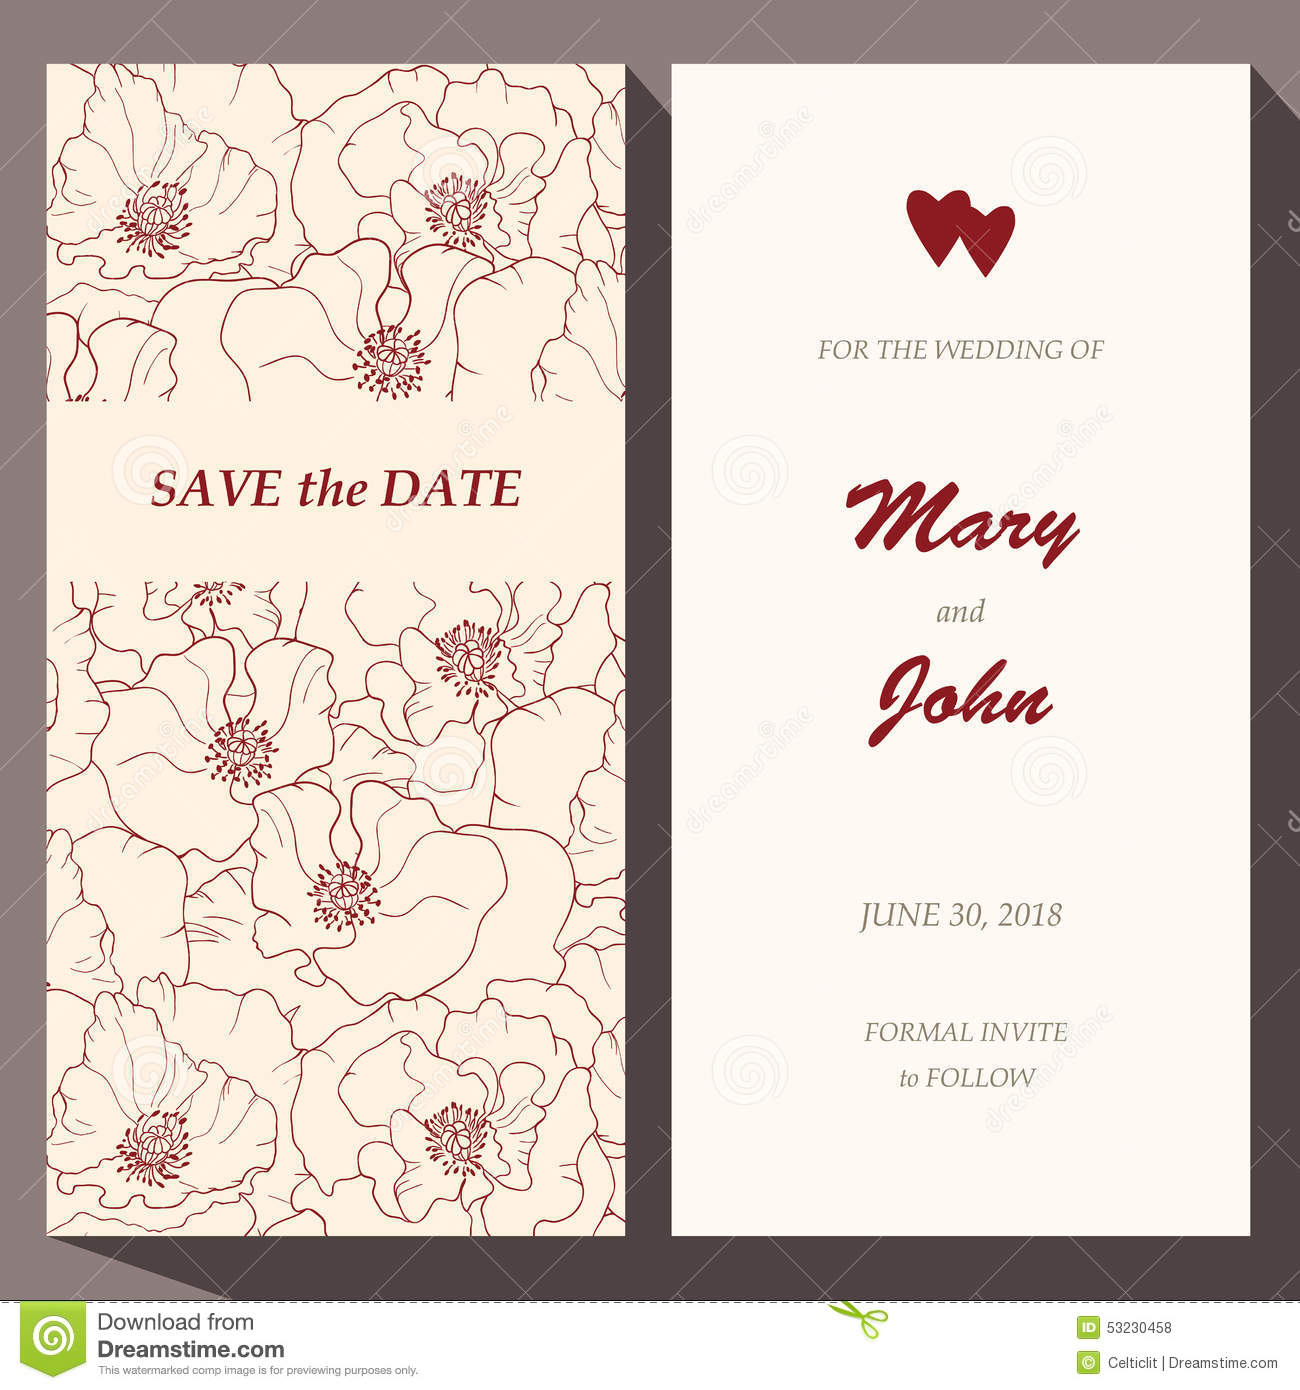 Save The Date Cards Free Printable - Graduation save the date templates free